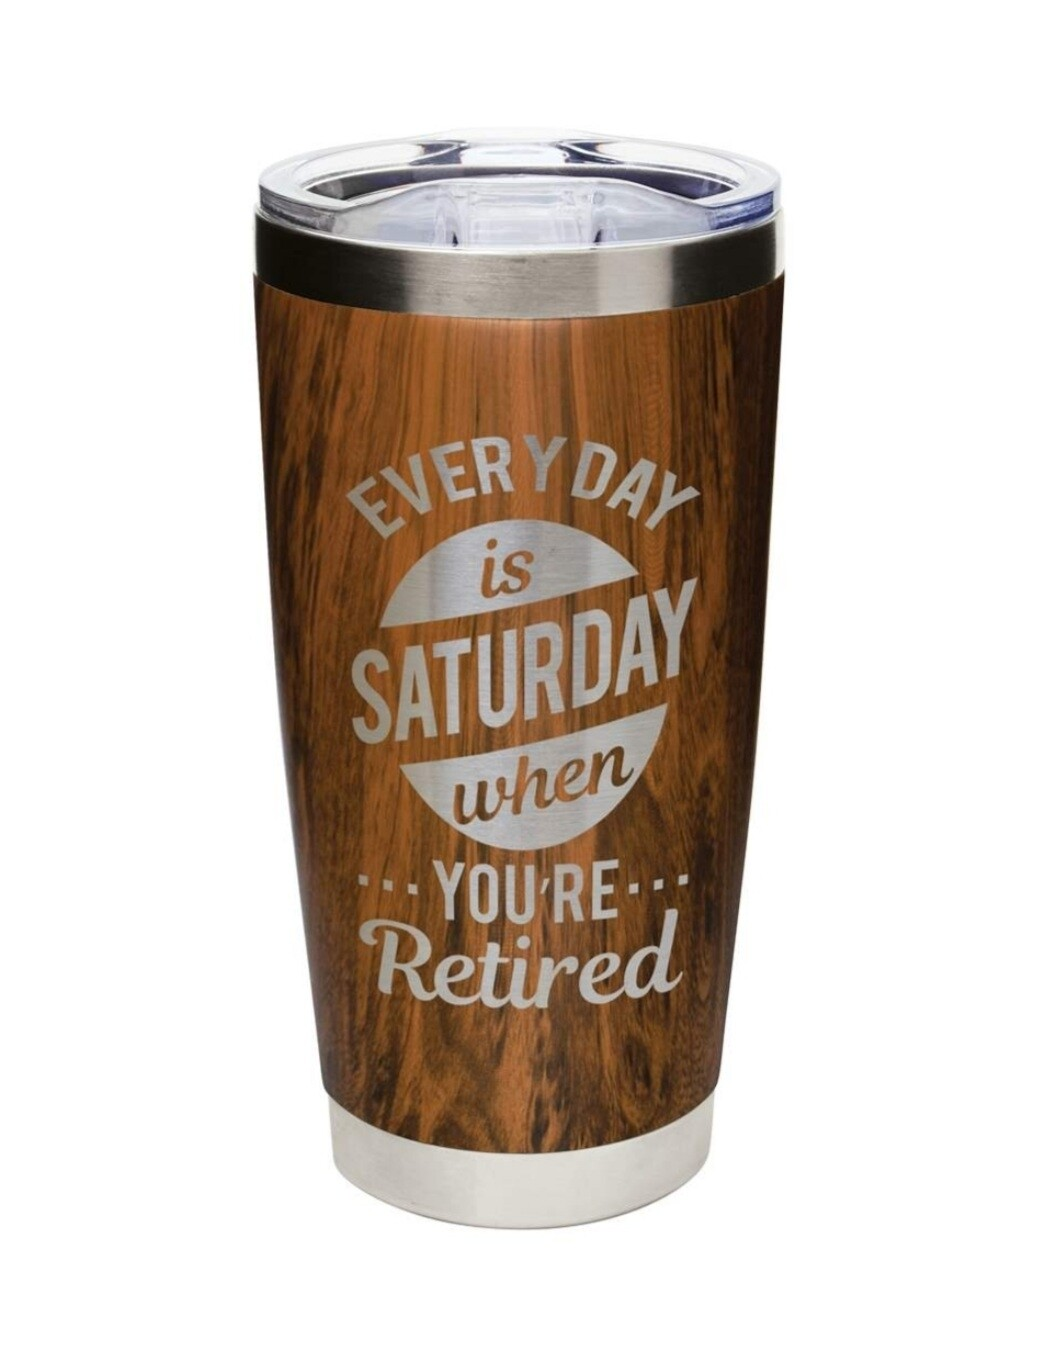 Carson 20oz Stainless Steel Tumbler - Everyday is Saturday when your Retired (Wood)